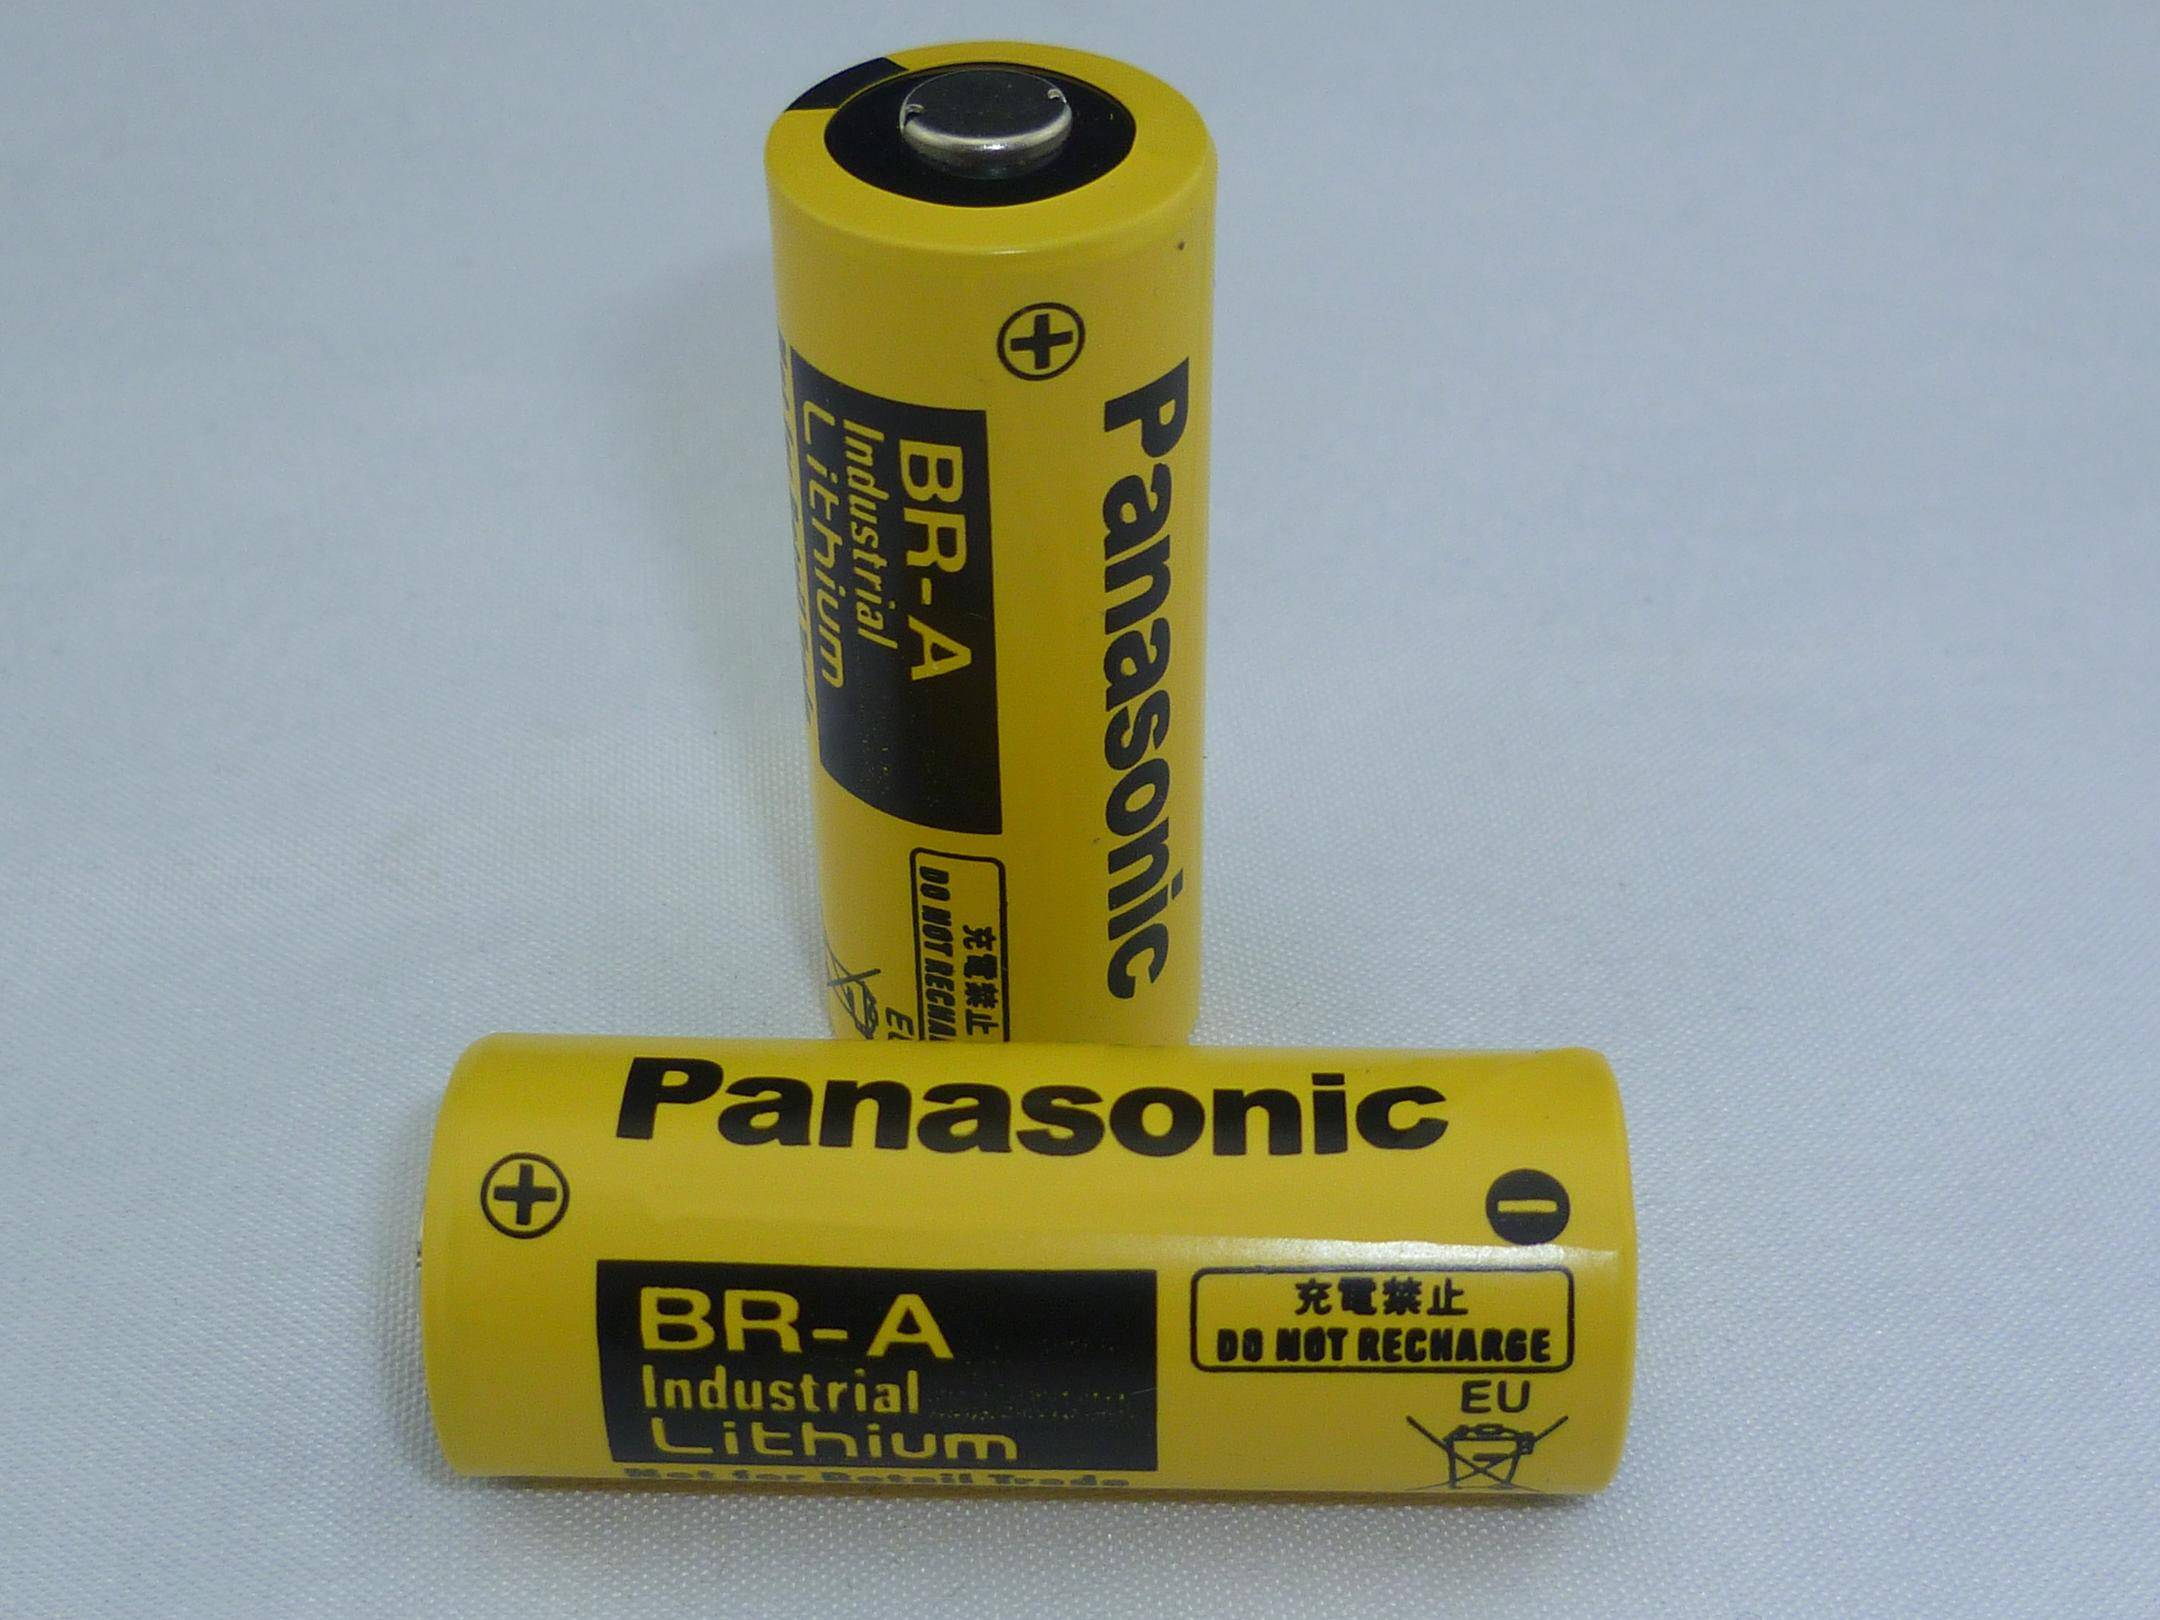 BR-A (new version) Panasonic